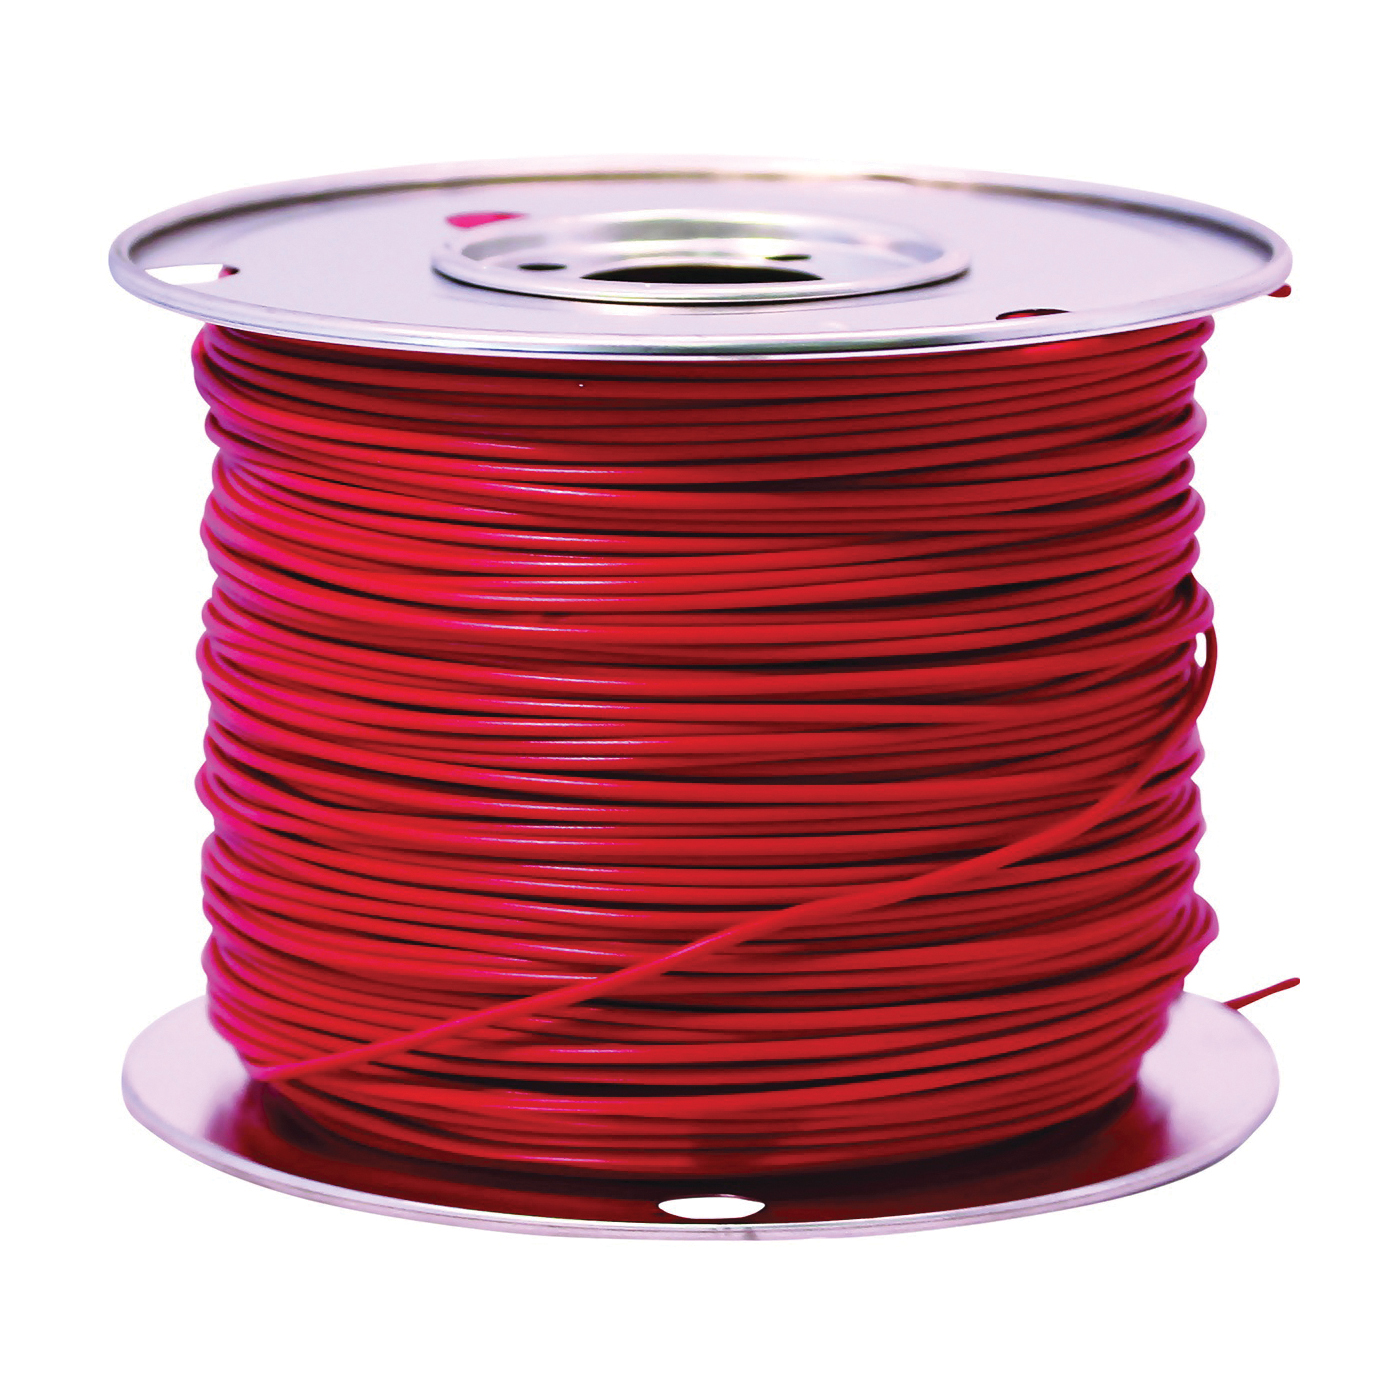 Picture of CCI 55667423 Primary Wire, 18 AWG Wire, 1 -Conductor, 60 VDC, Copper Conductor, Red Sheath